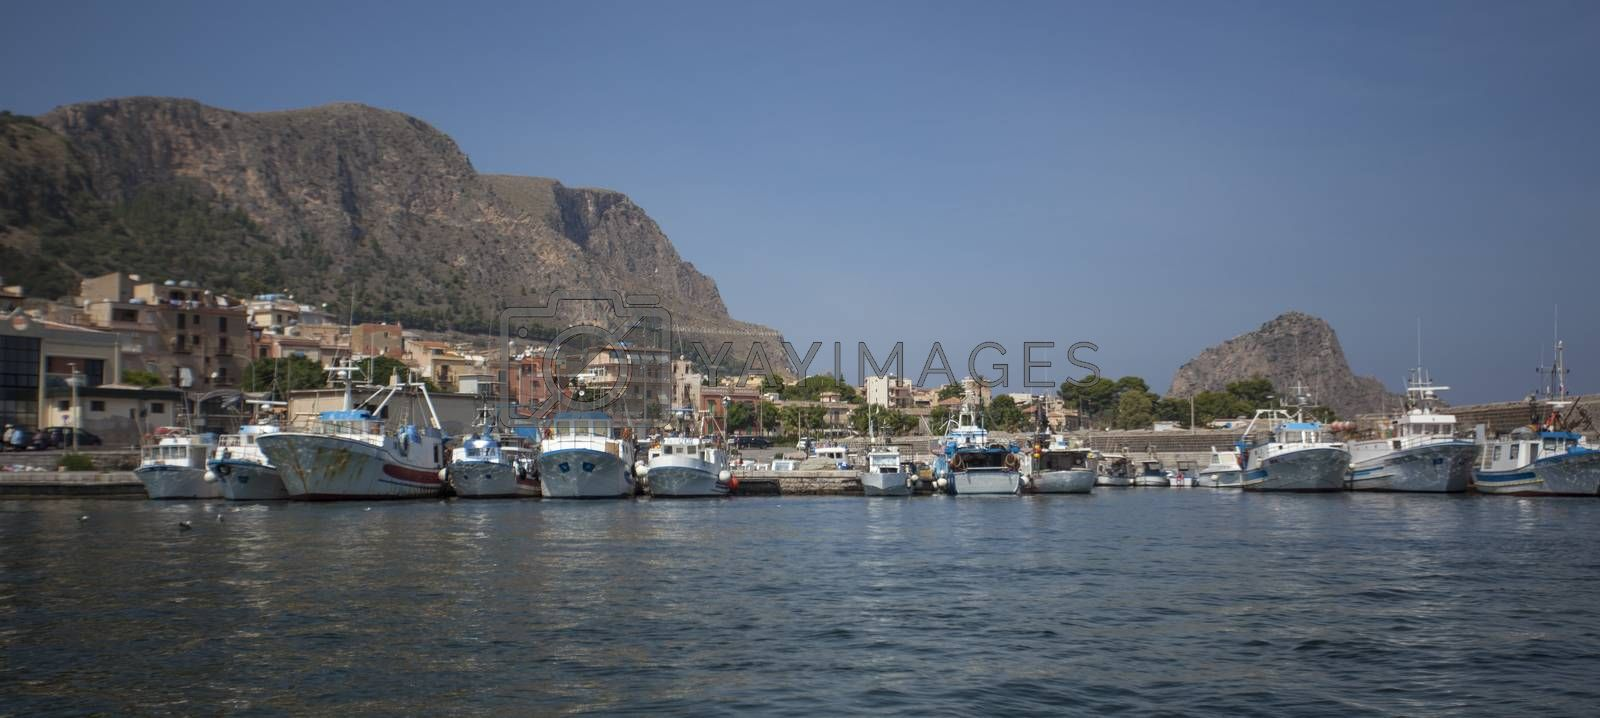 Royalty free image of Bagnera Port in Sicily #7 by pippocarlot